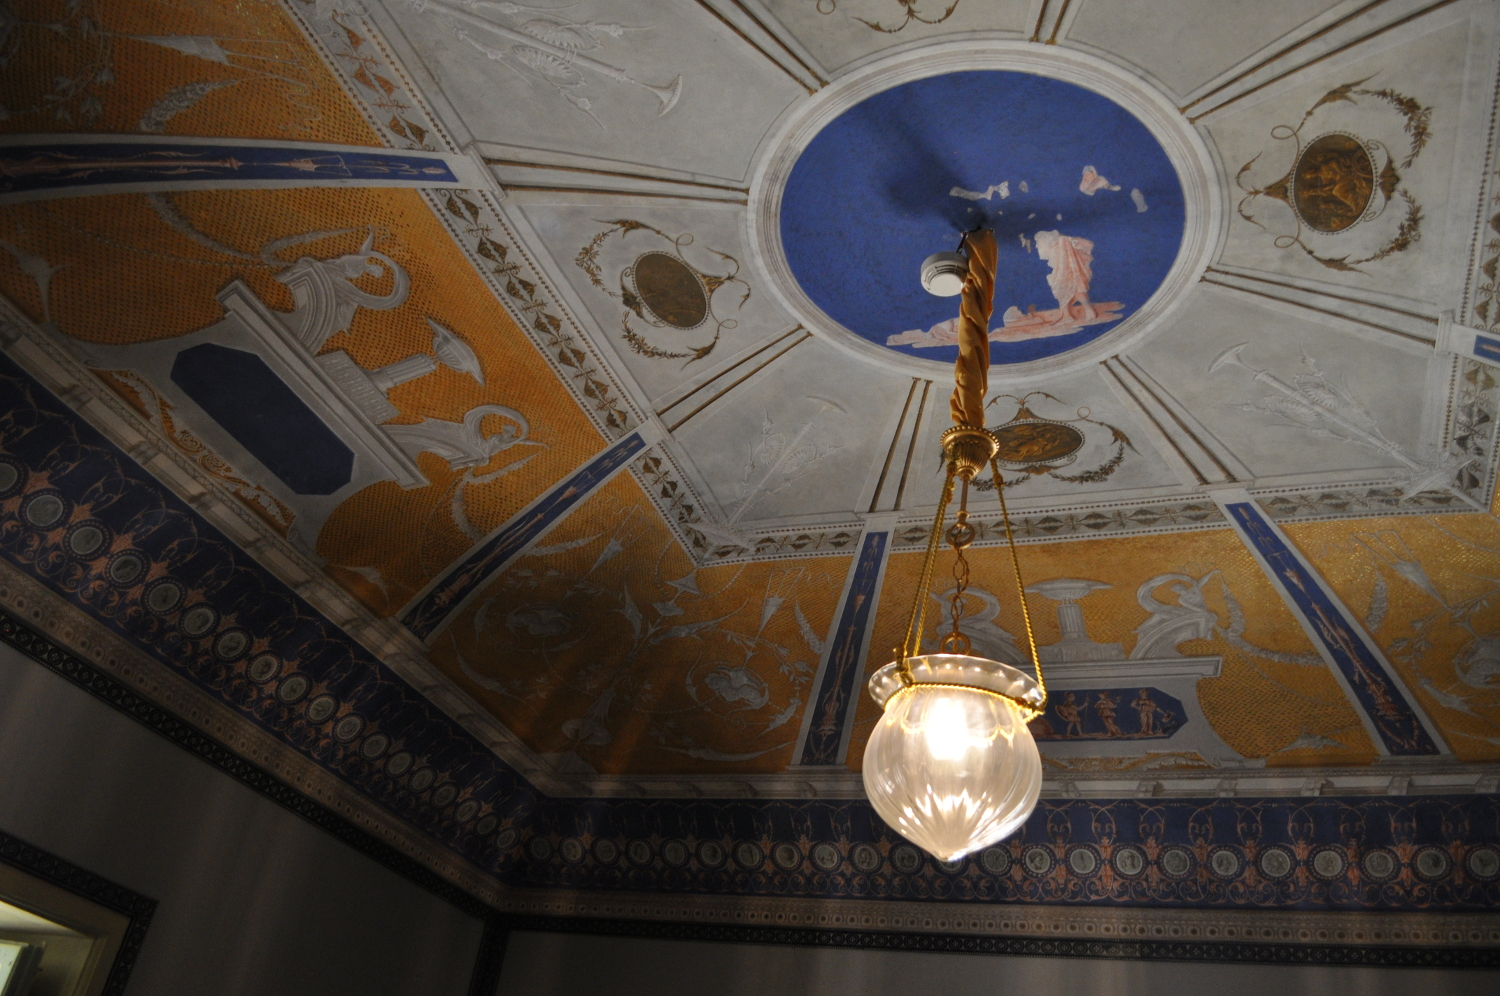 rocaille-blog-palazzina-cinese-palermo-12